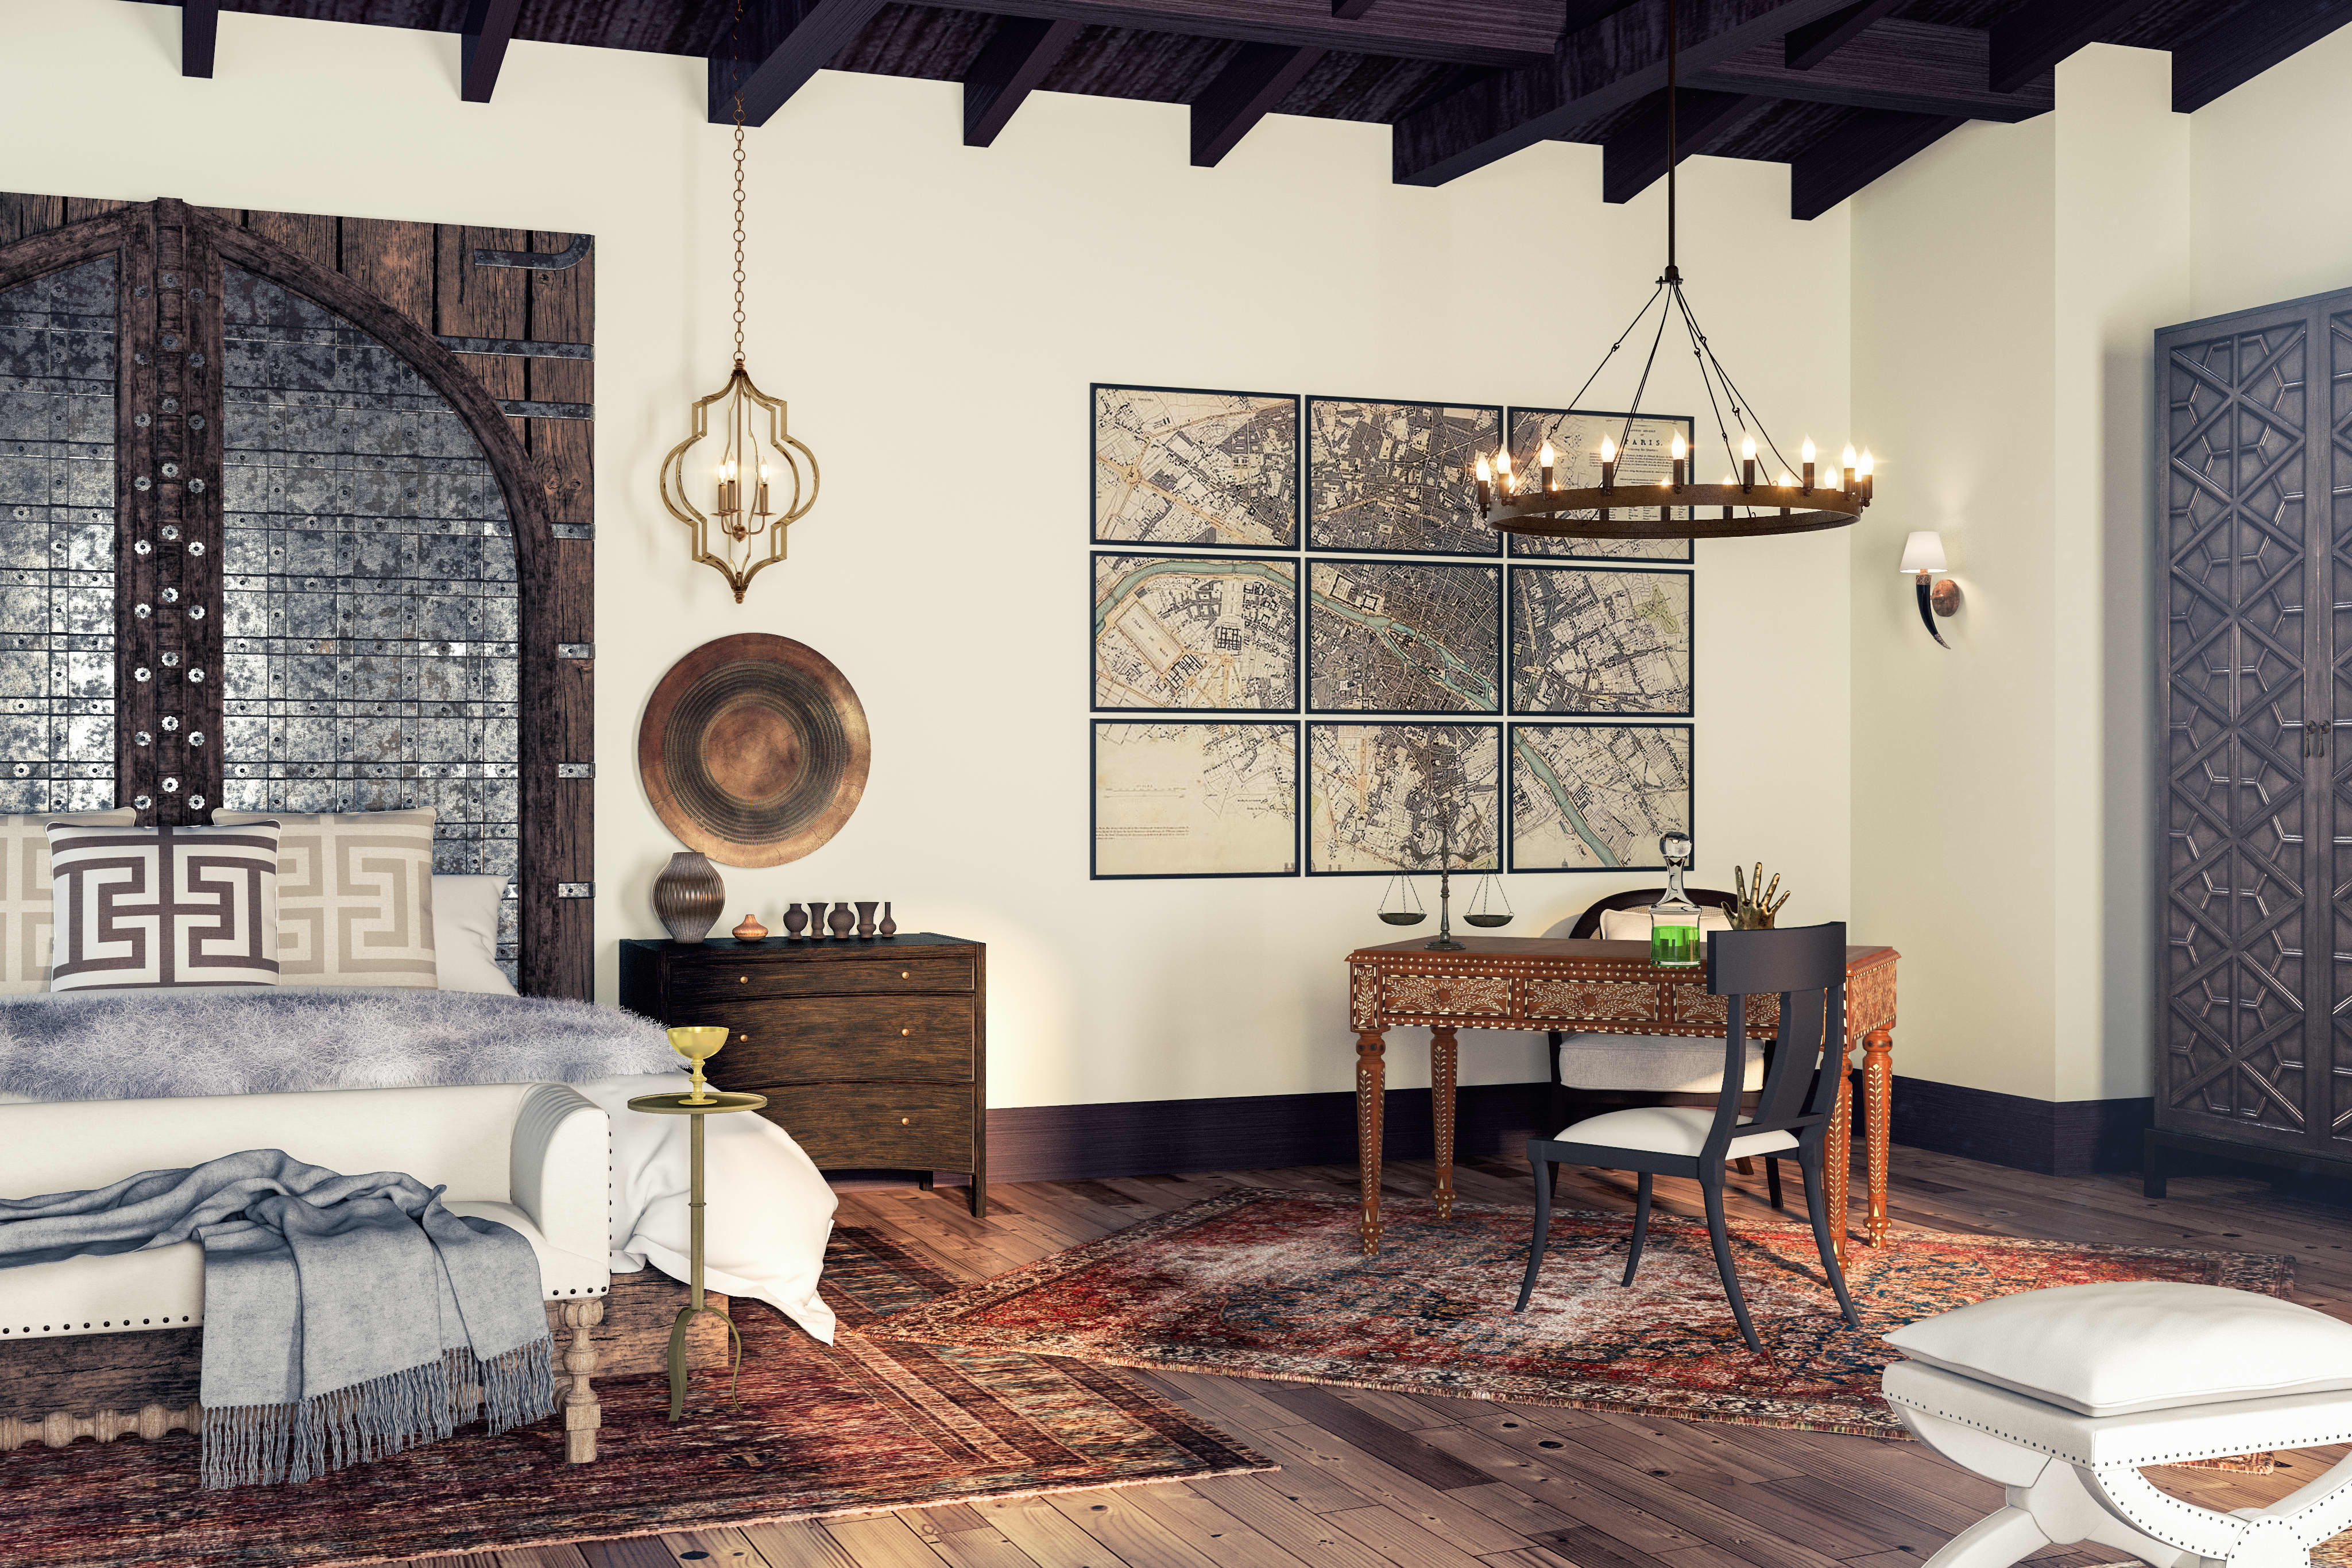 5 Interiors Inspired by Your Favorite 'Game of Thrones' Characters; #HomeDecor #GOT